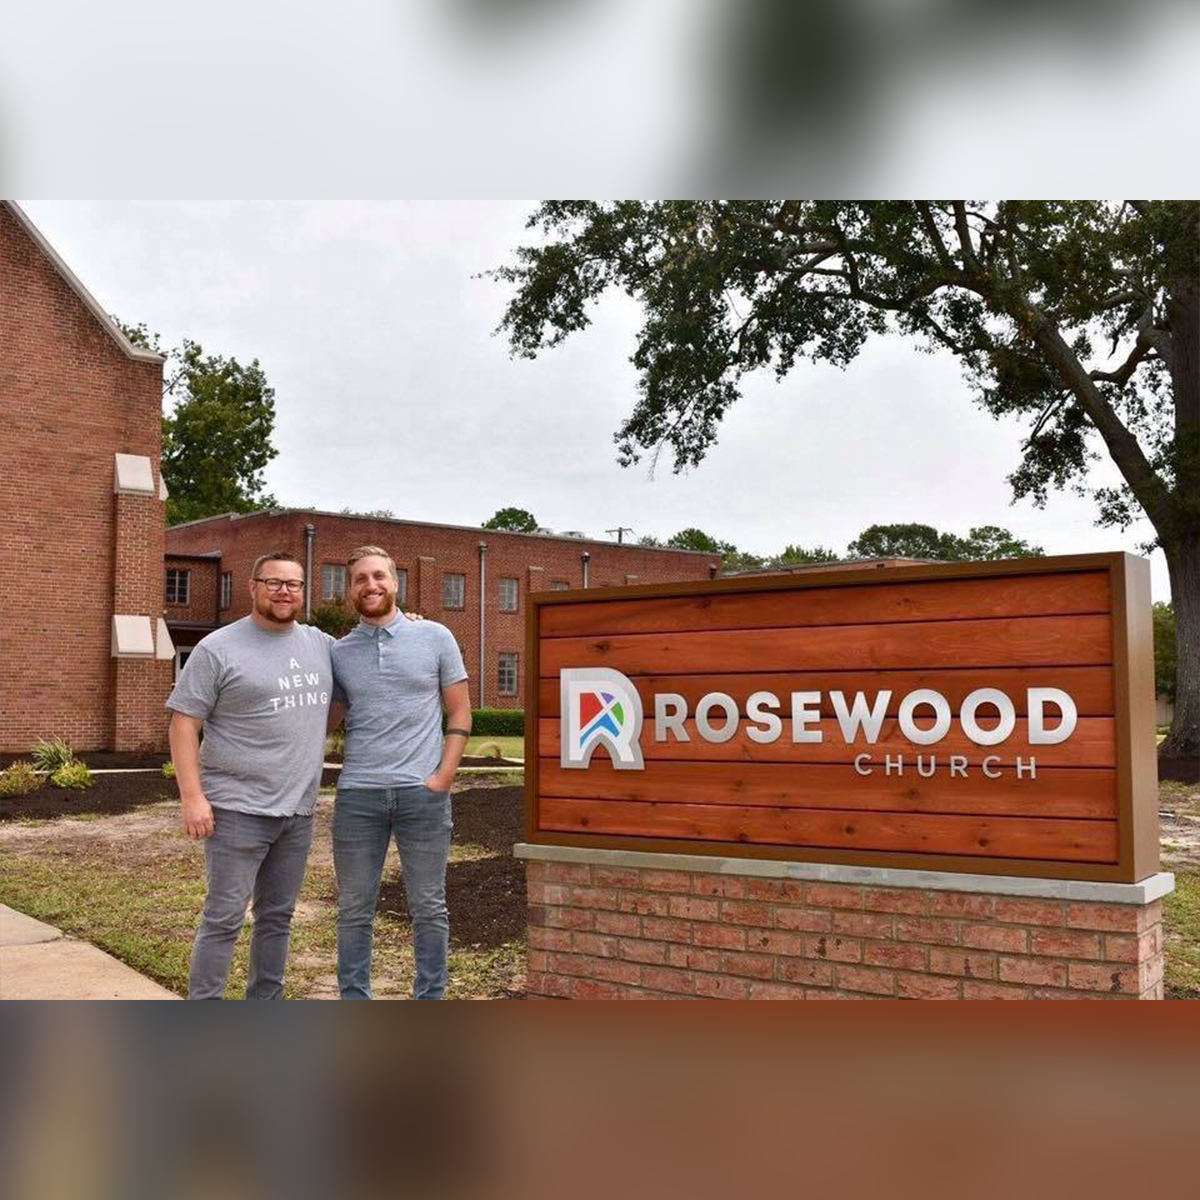 Rosewood logo building me and kenny